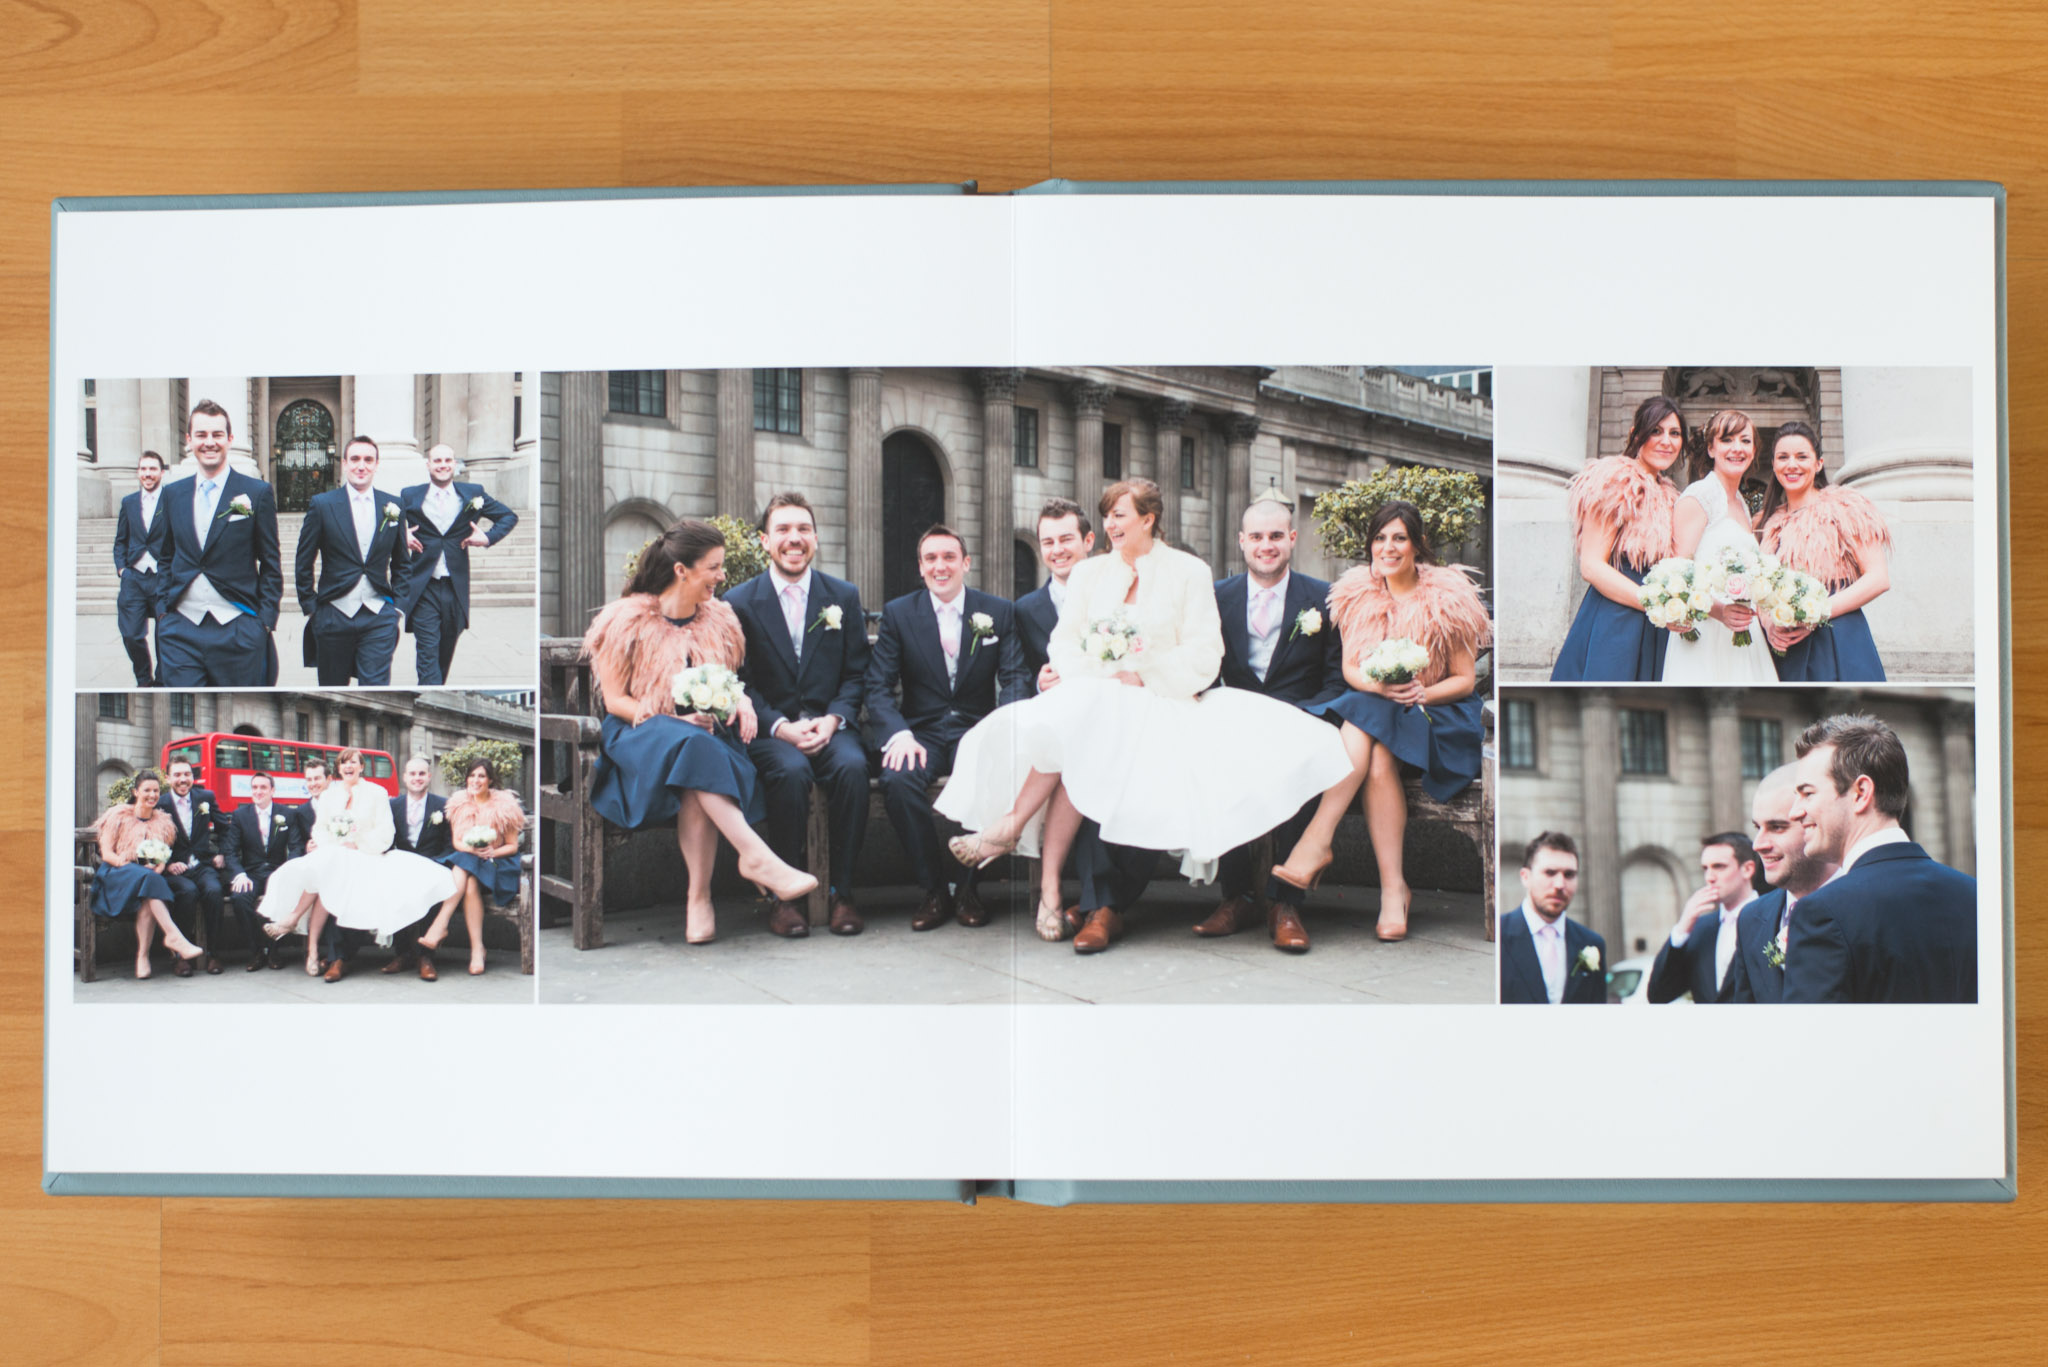 Showcasing the bepoke design of one of our wedding albums